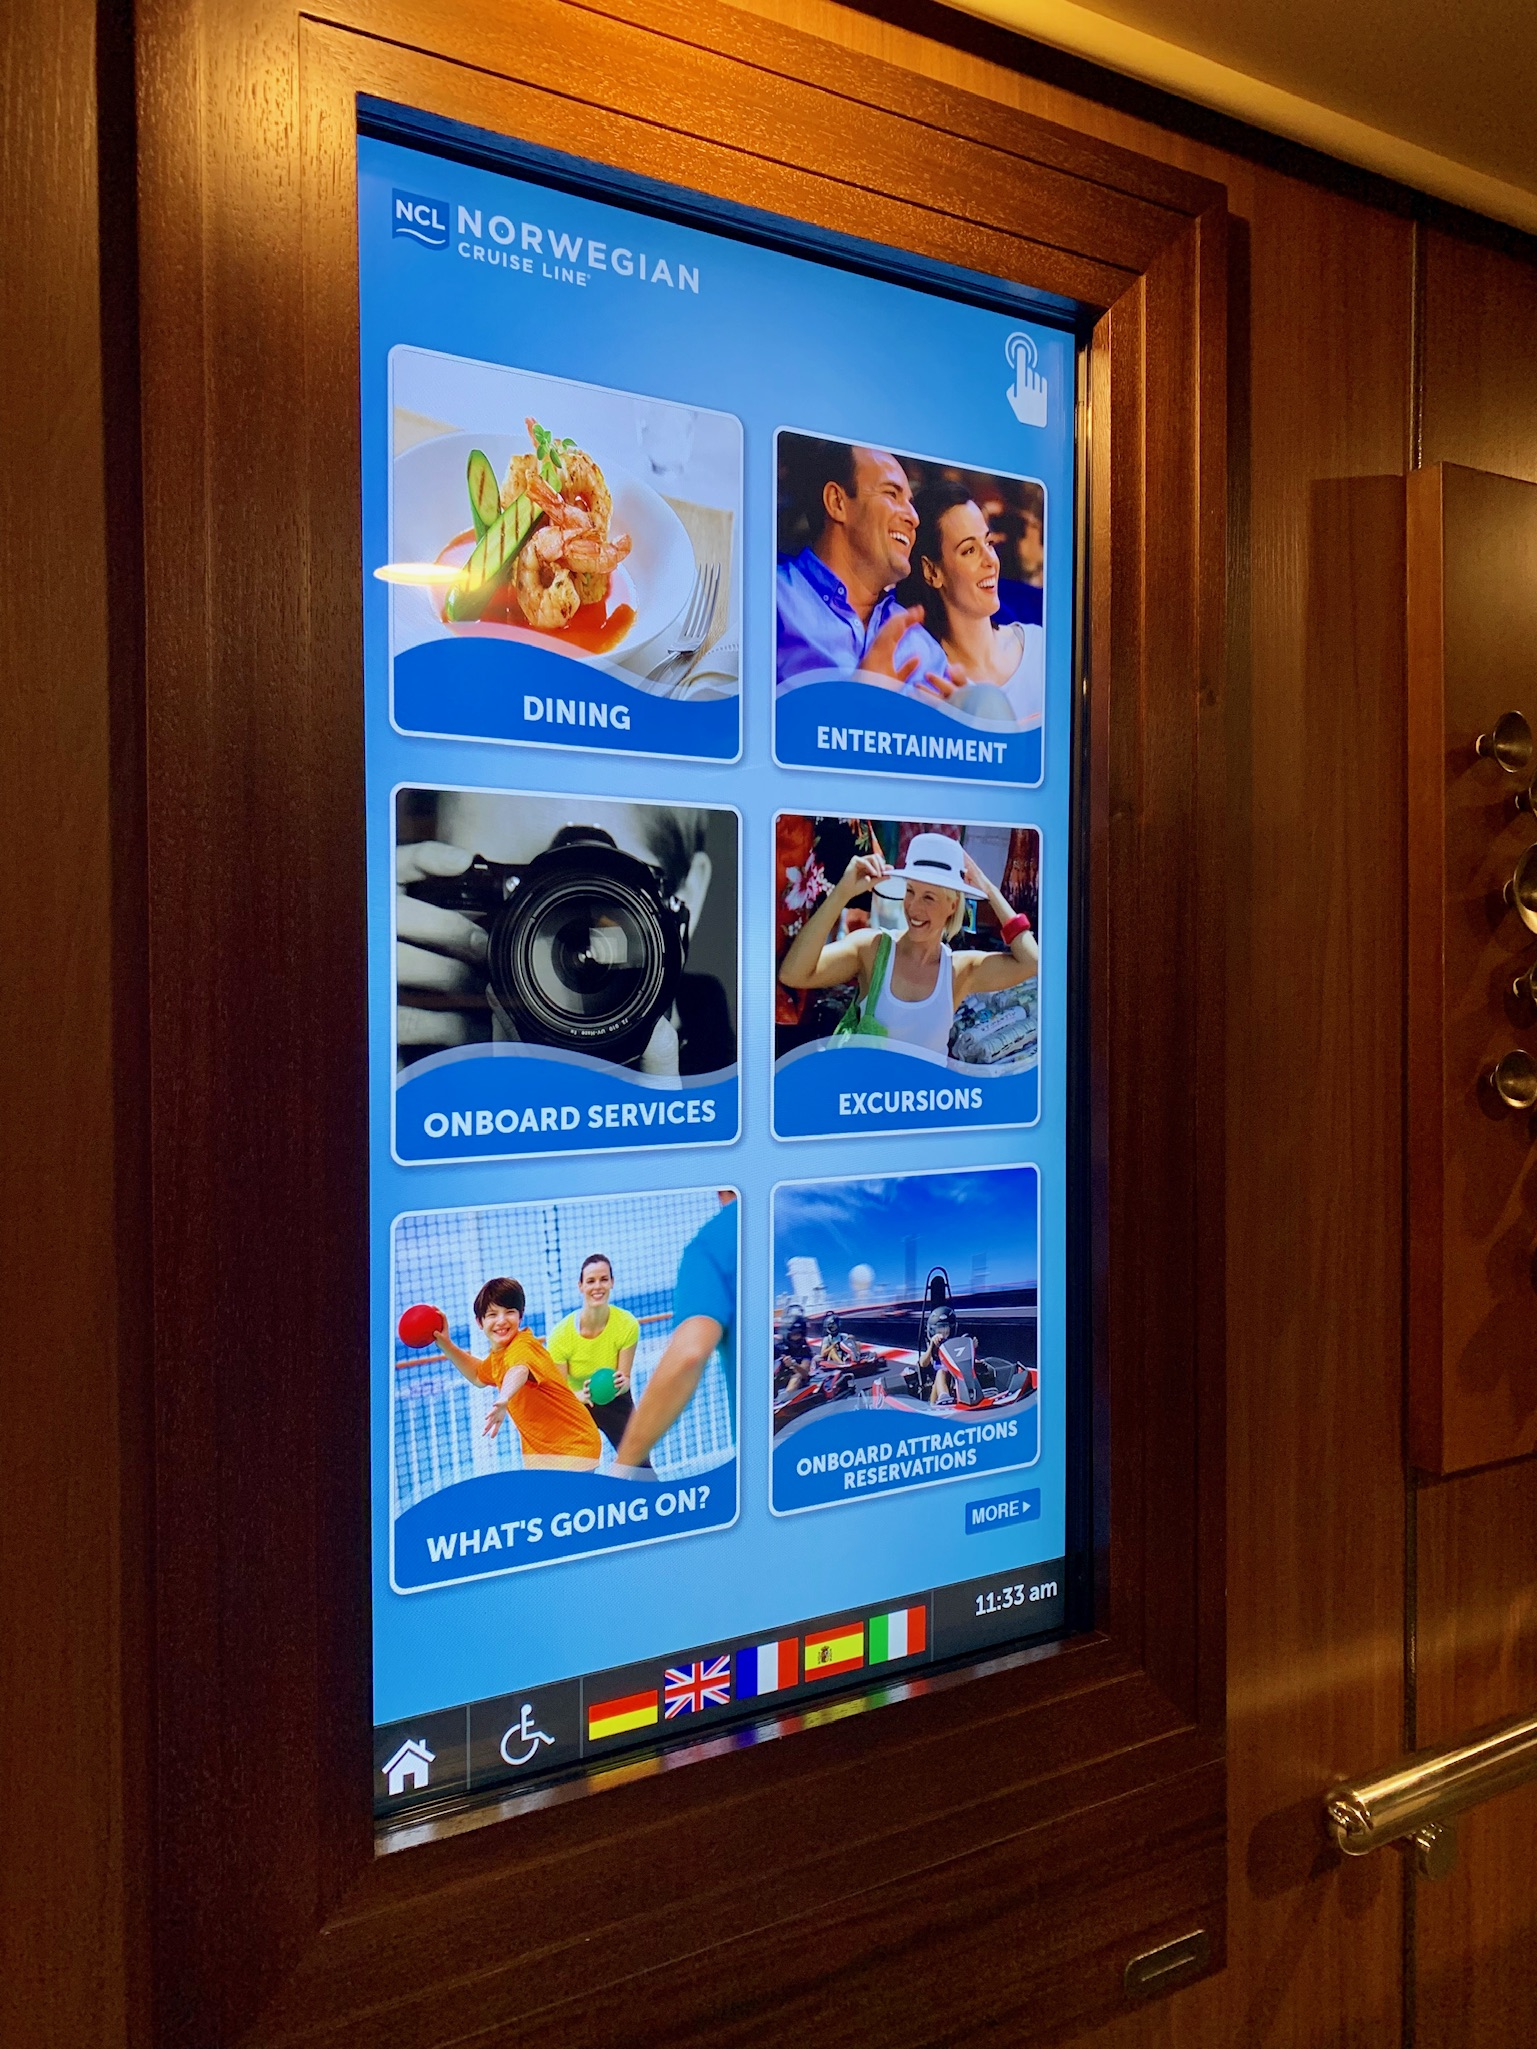 NCL JOY - Central interactive reservation screens